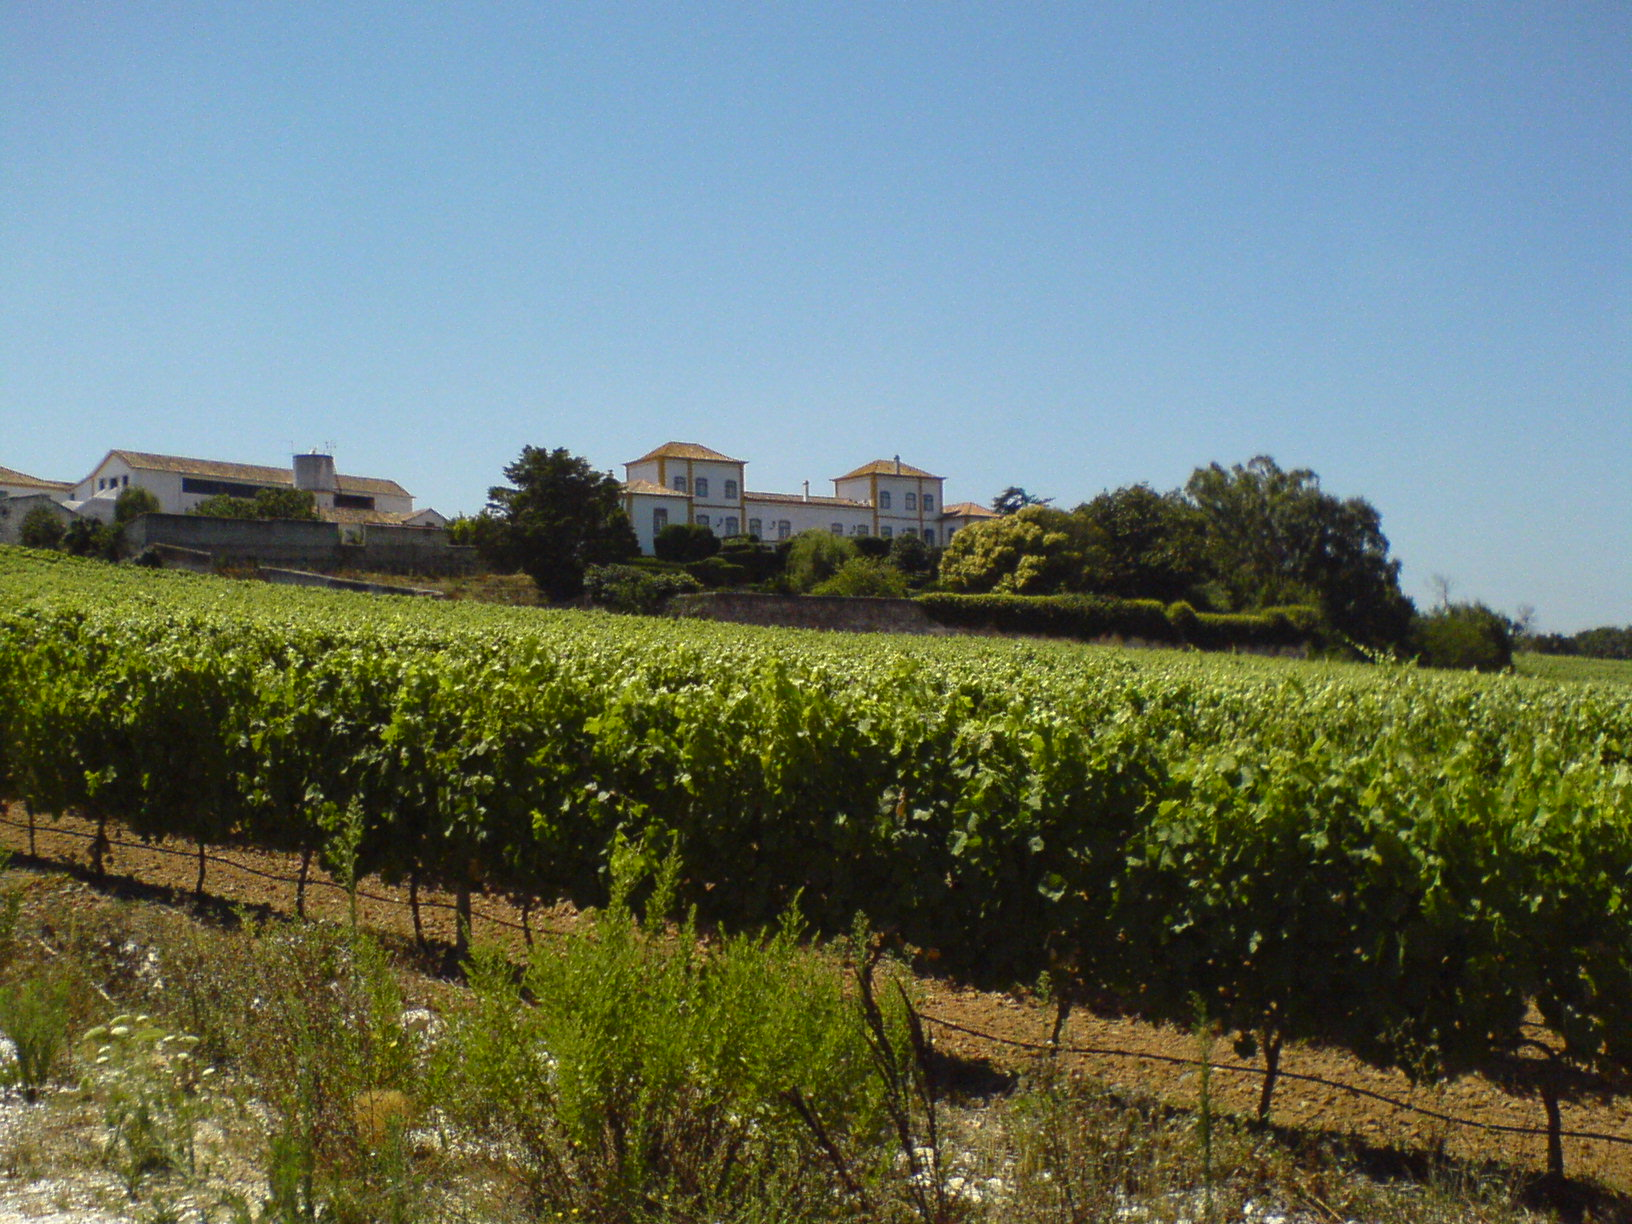 The Fine View of the Vines